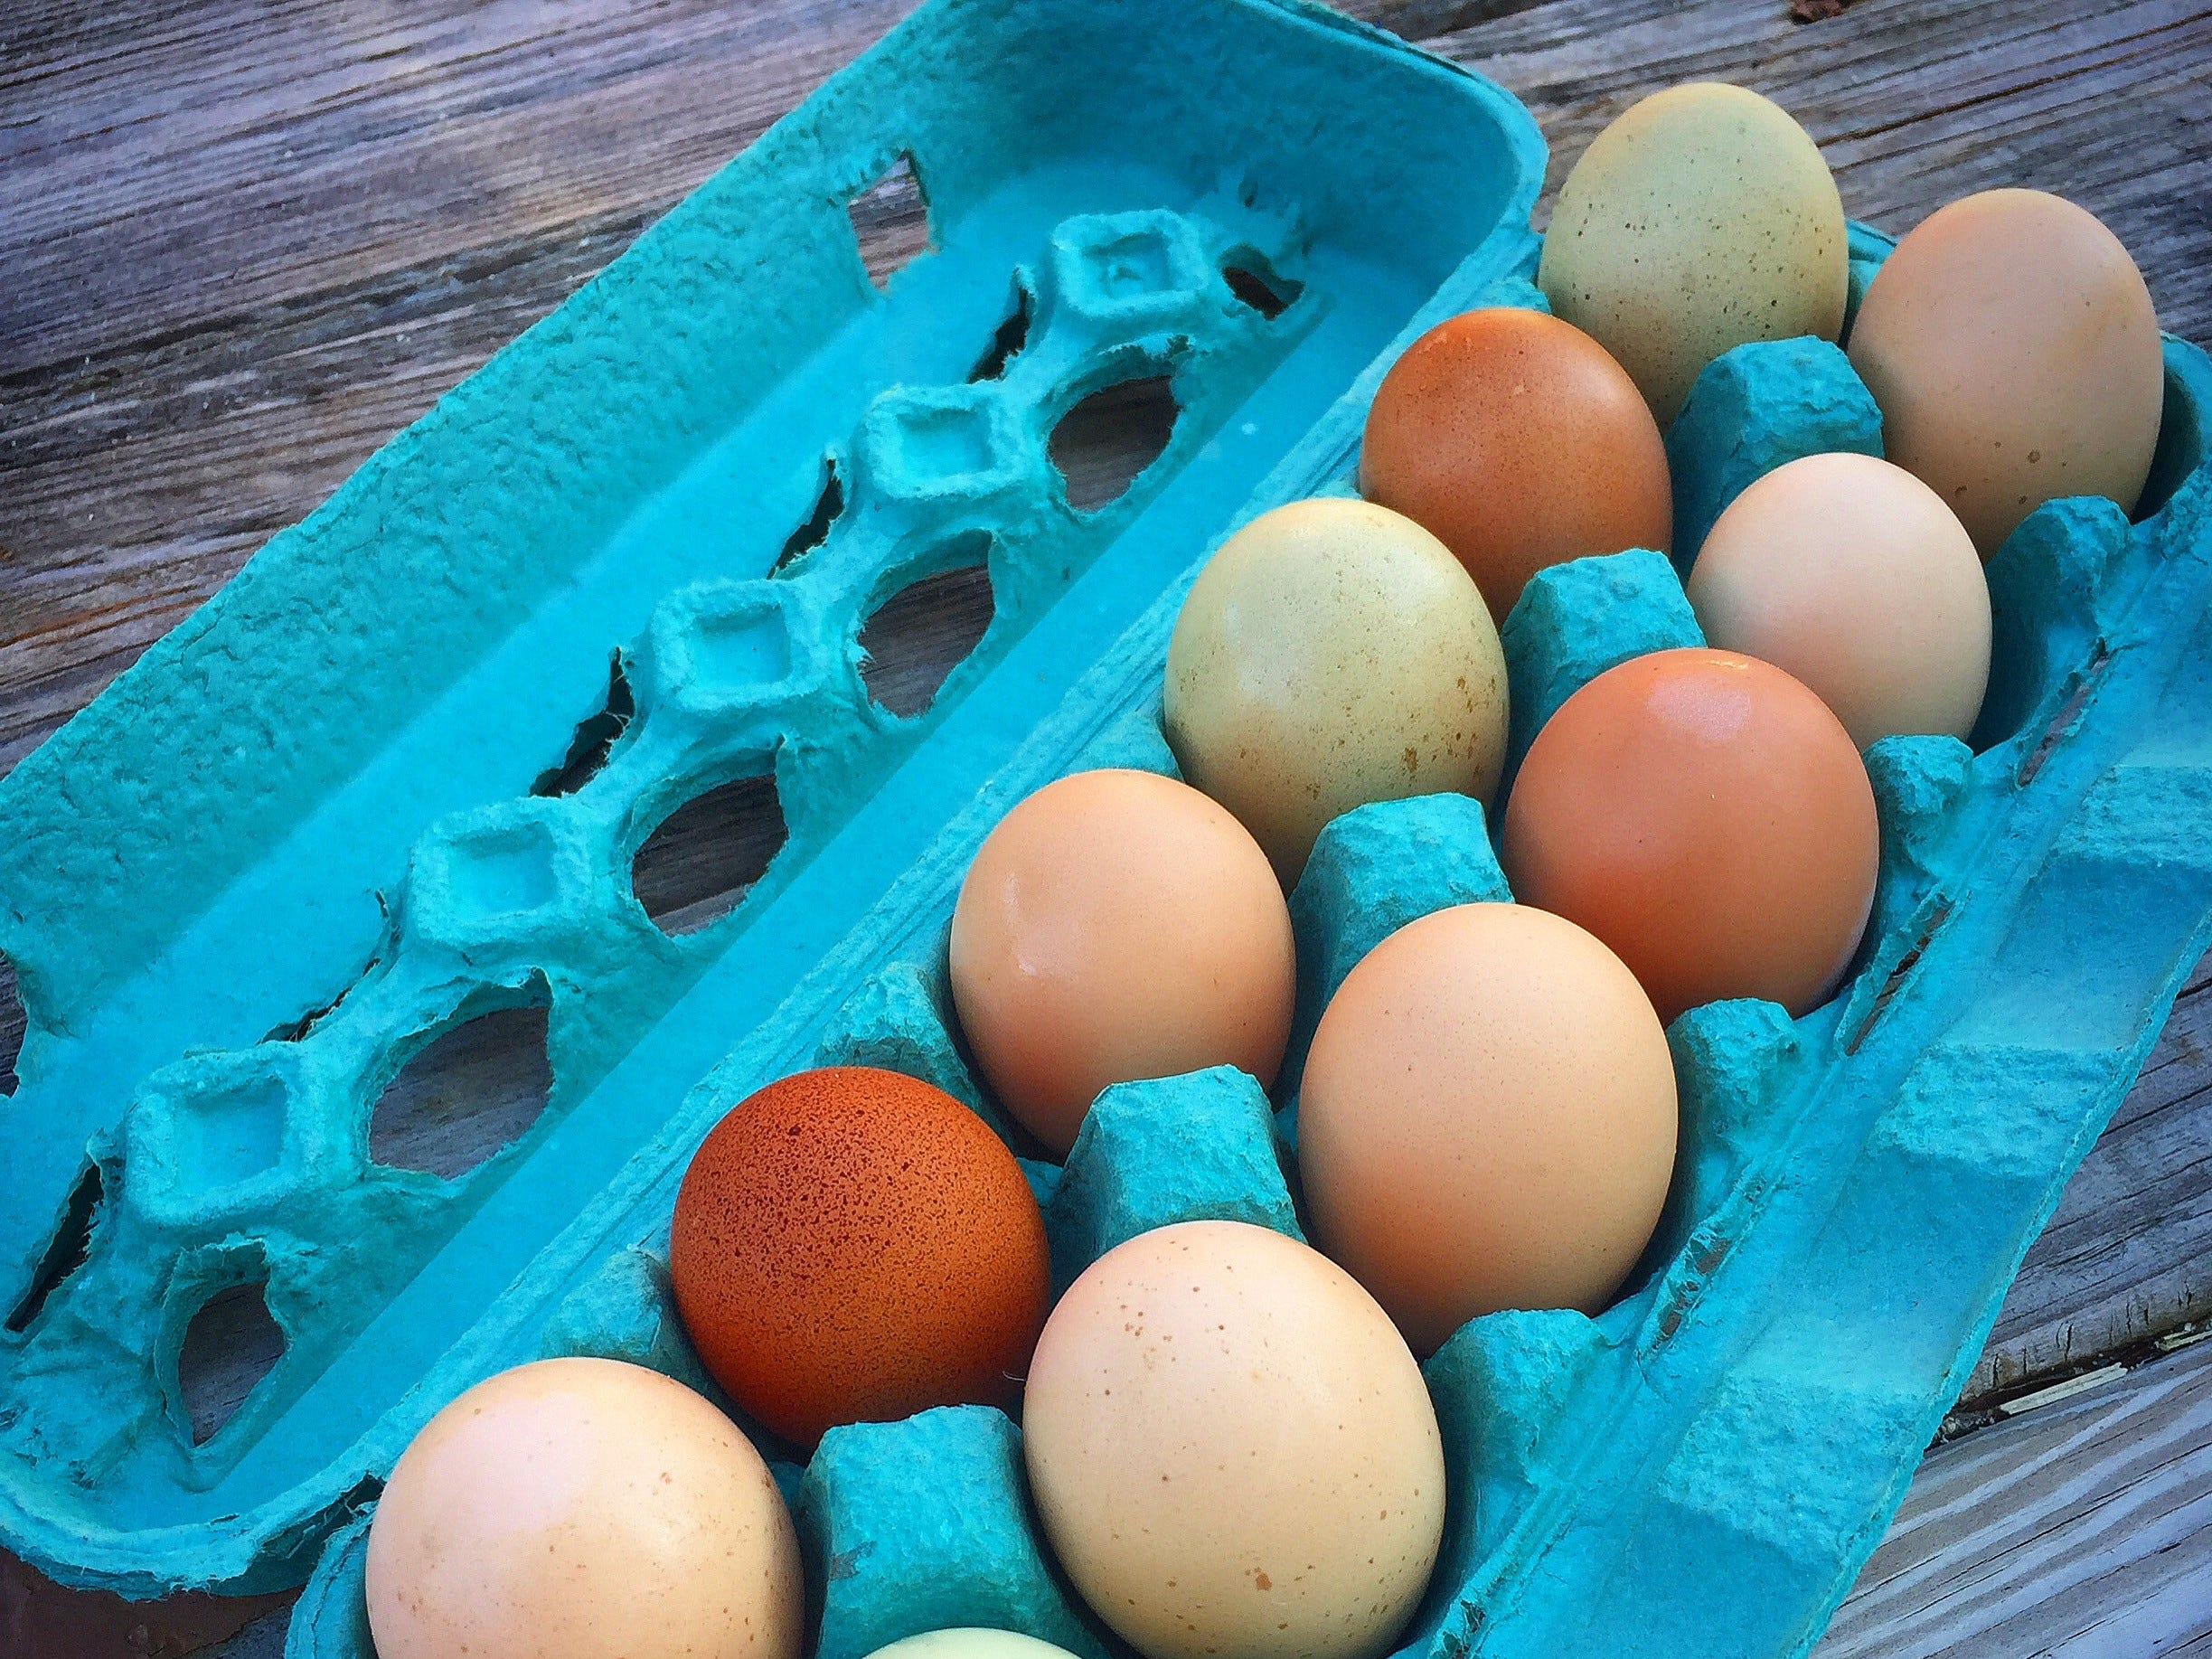 Danielle Raad packages some of the colorful eggs she collects from her chickens to sell locally.